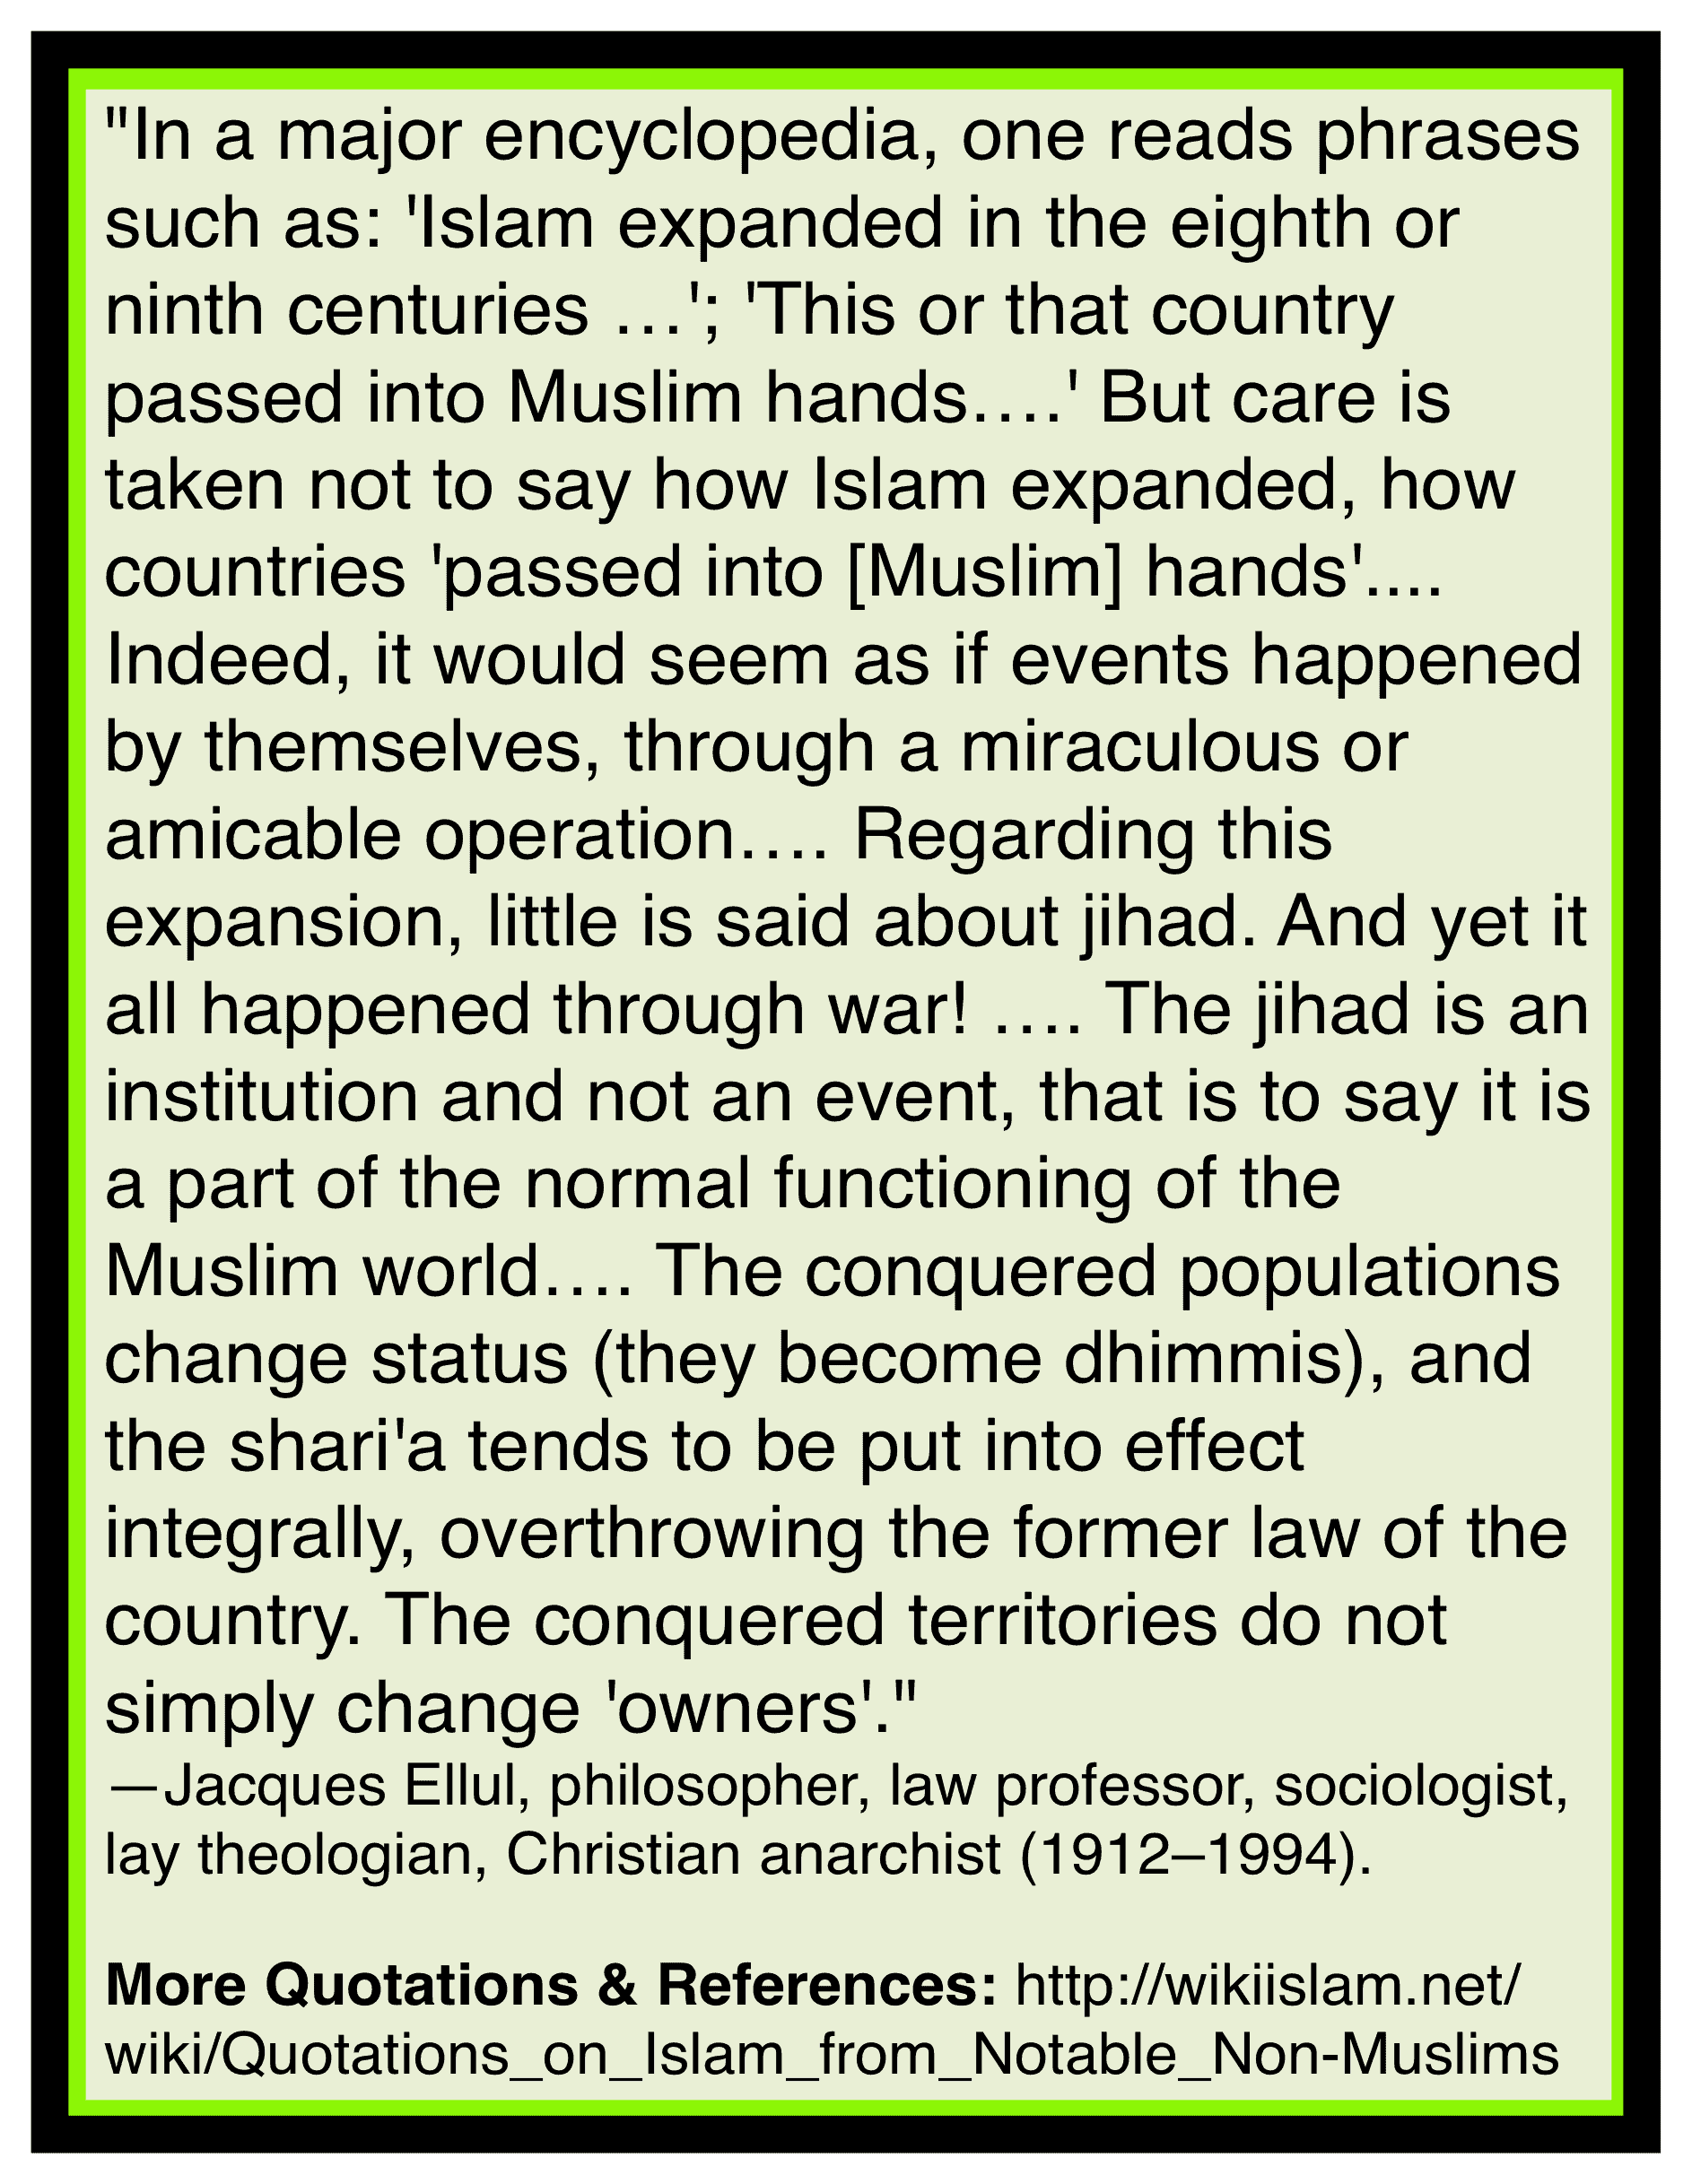 Islam history lied about